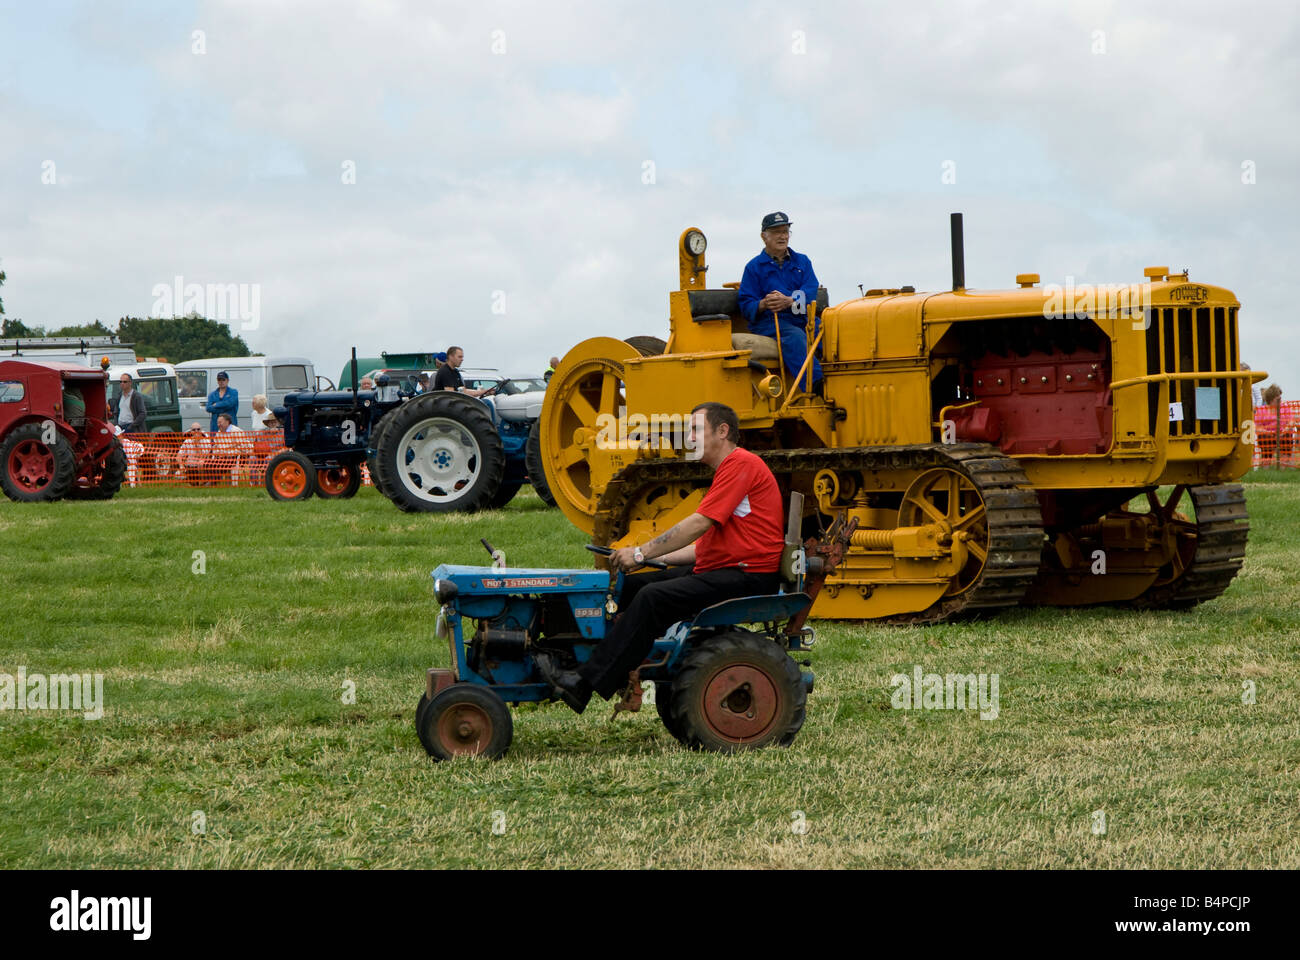 A Moto Standard mini tractor and Fowler caterpillar tracked vehicle at Bloxham Vintage Vehicle Show. UK - Stock Image